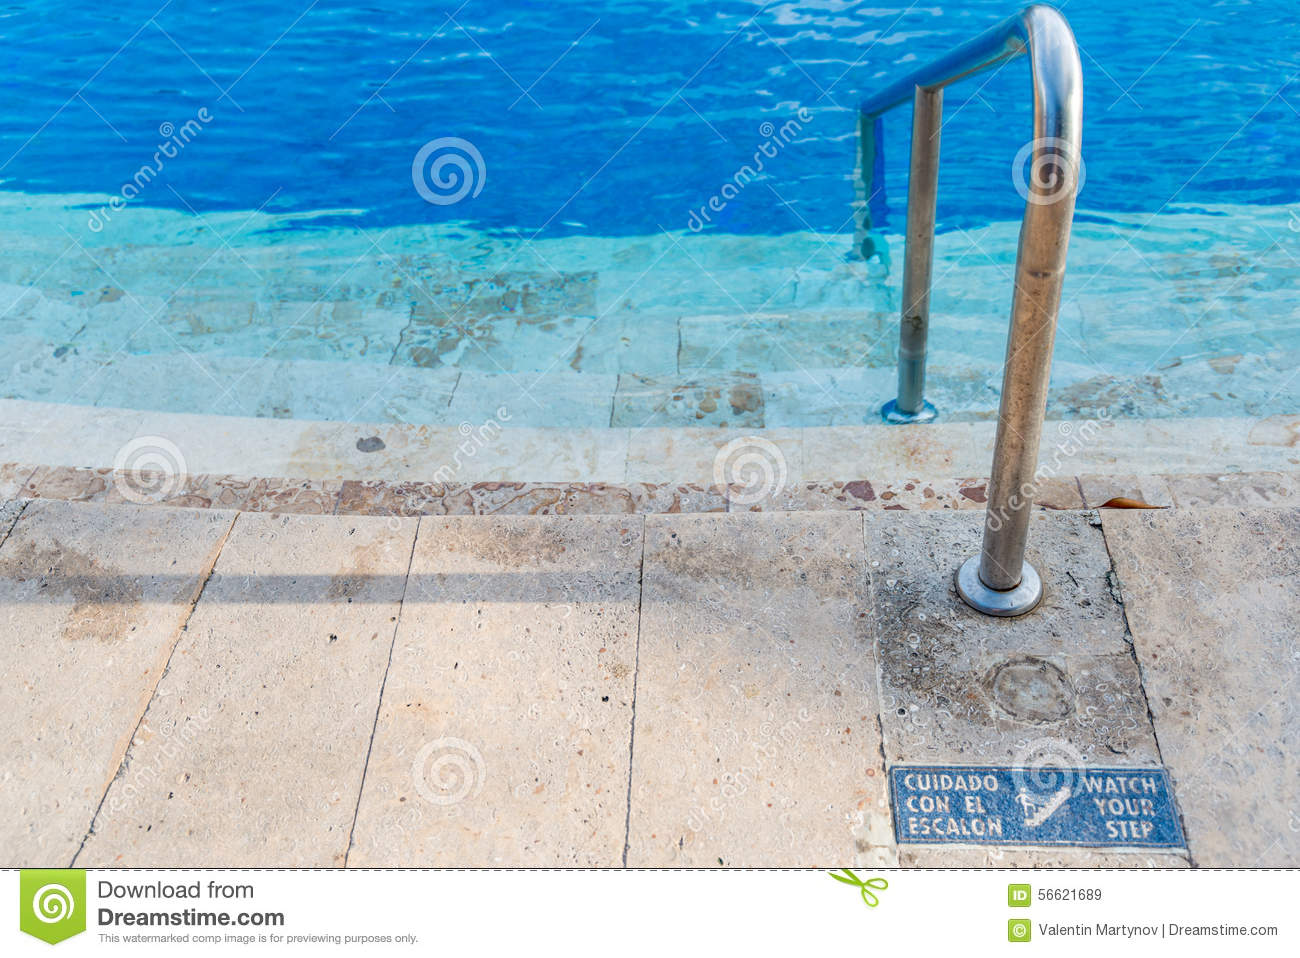 Slippery Steps Down To Swimming Pool With Blue Water And Watch Your Step Sign In Both English